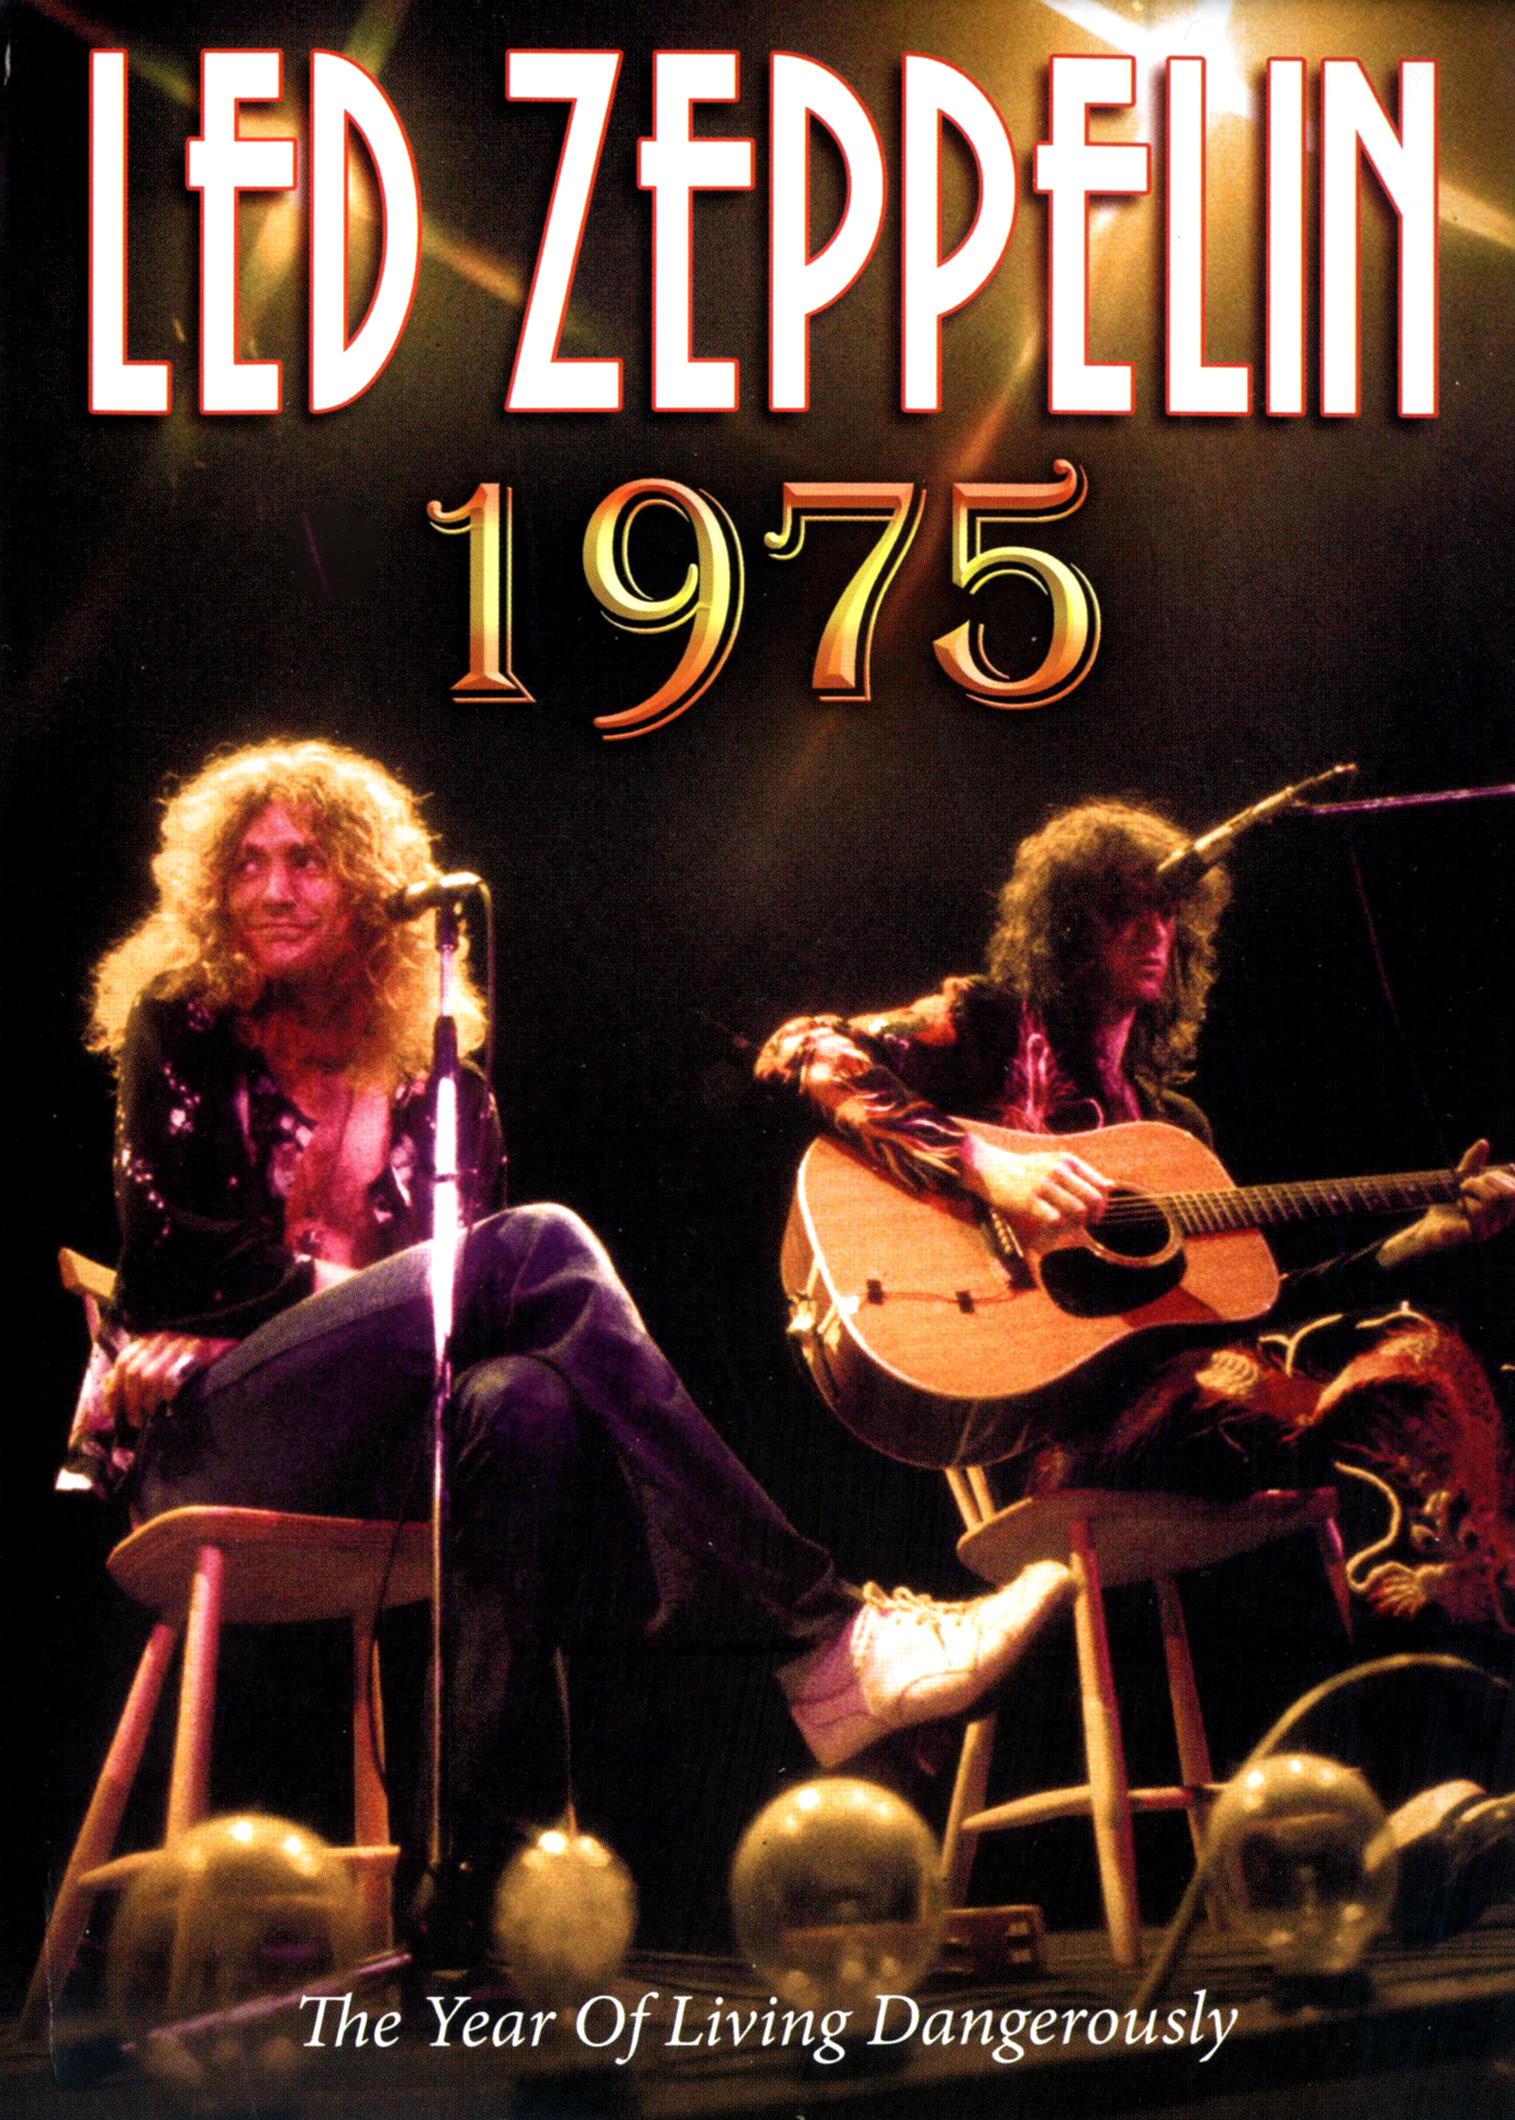 Led Zeppelin: 1975 - The Year of Living Dangerously